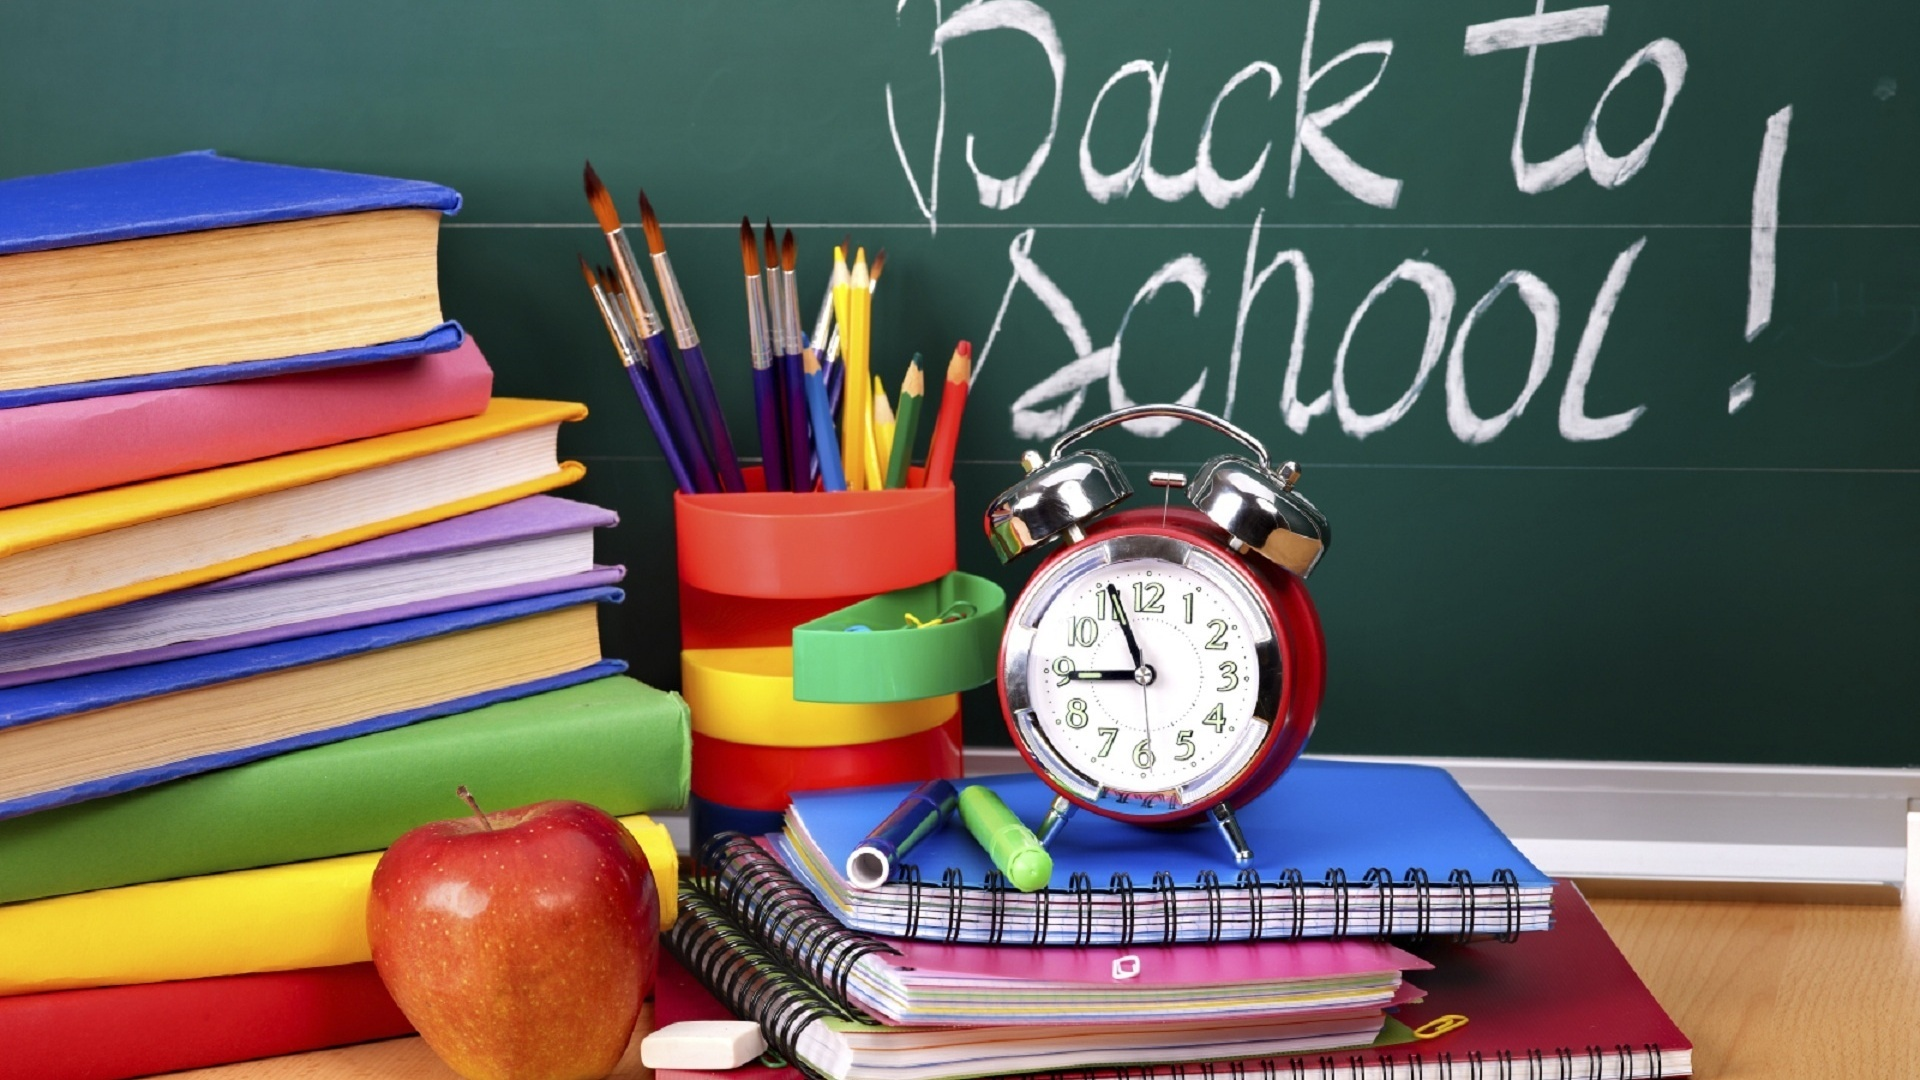 Apple books and crayons   Time for back to school 1920x1080